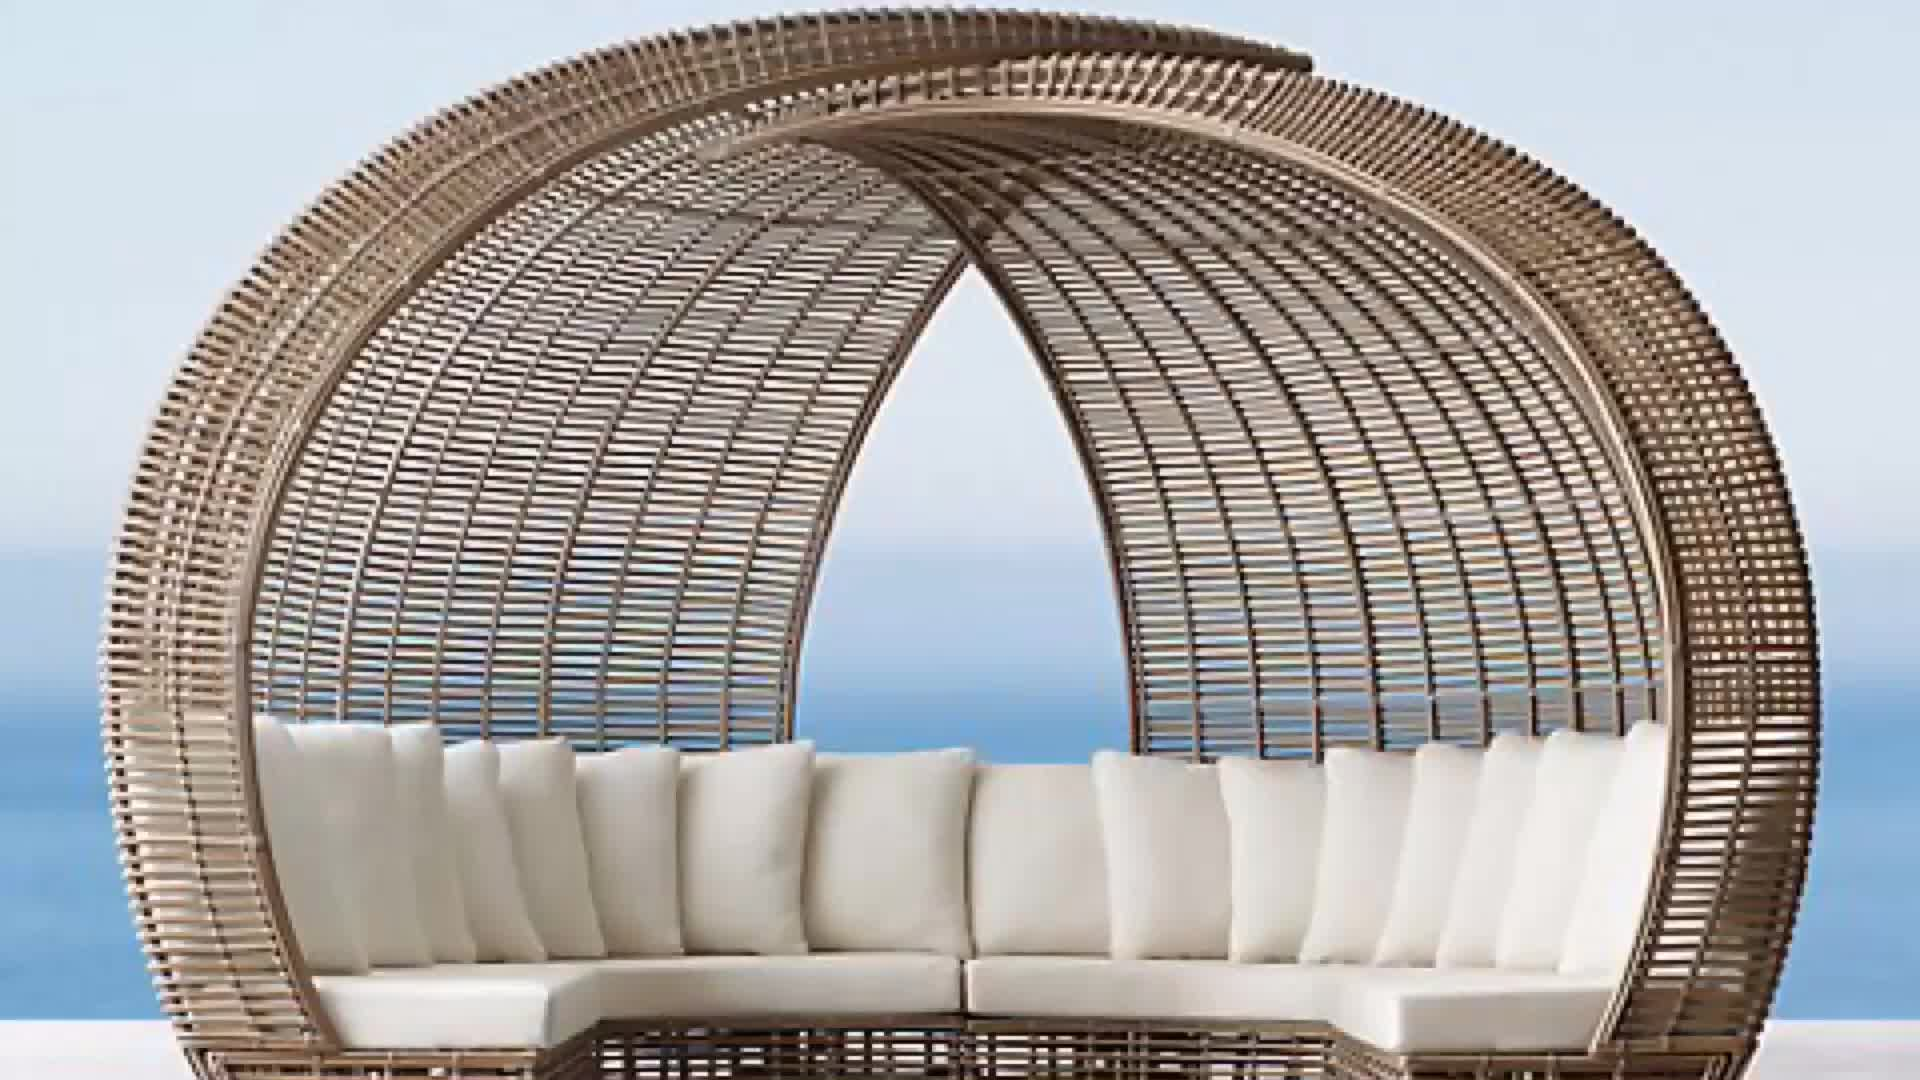 Modern Leisure Waterproof Garden Terrace Woven Rope Table and Chairs Patio Aluminium Dining Outdoor Furniture for Balcony